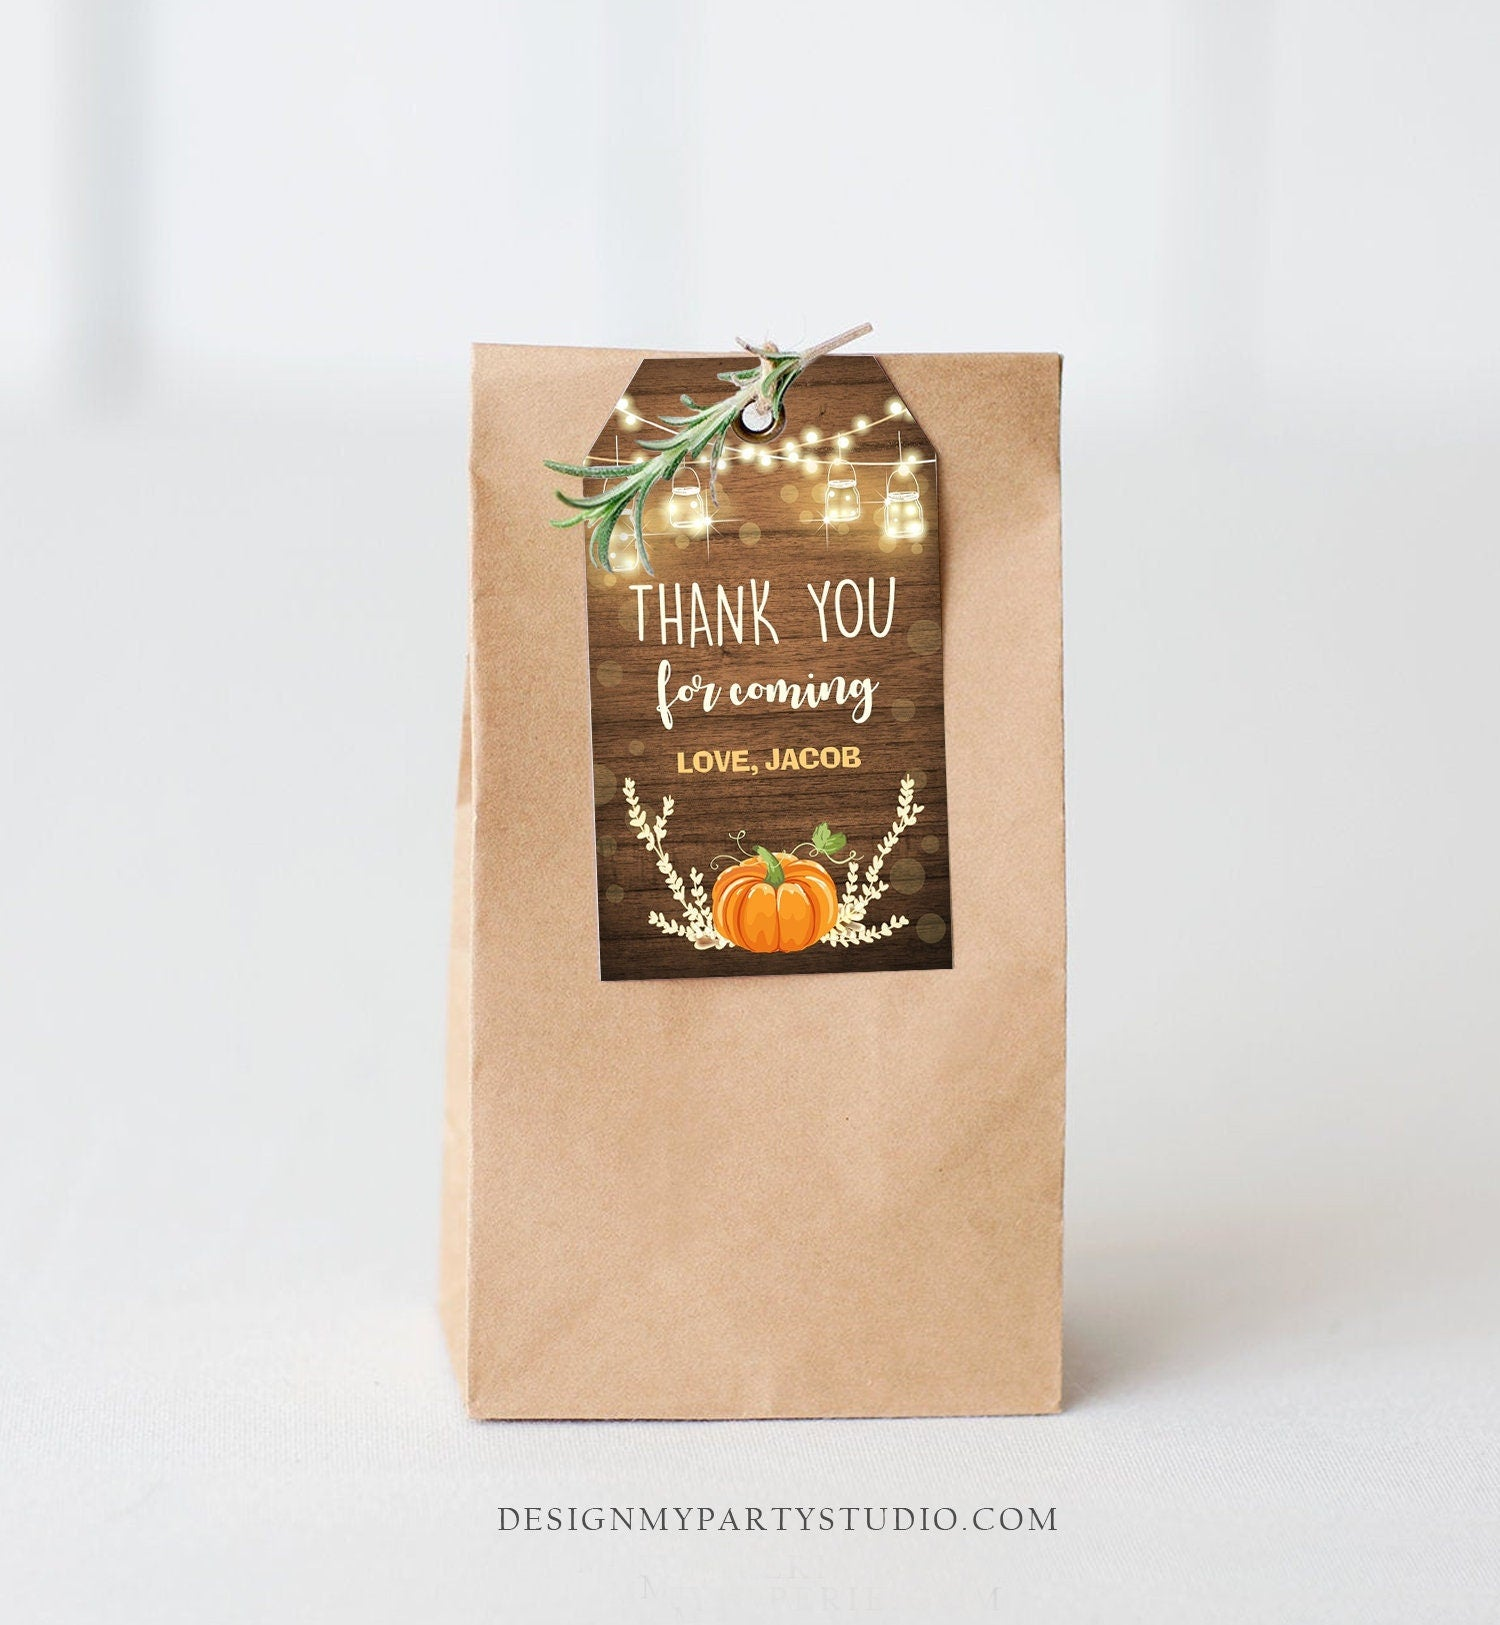 Editable Little Pumpkin Favor Tag Thank You Tag Birthday Baby Shower Rustic Wood Fall Autumn Pumpkin Download Corjl Template Printable 0015